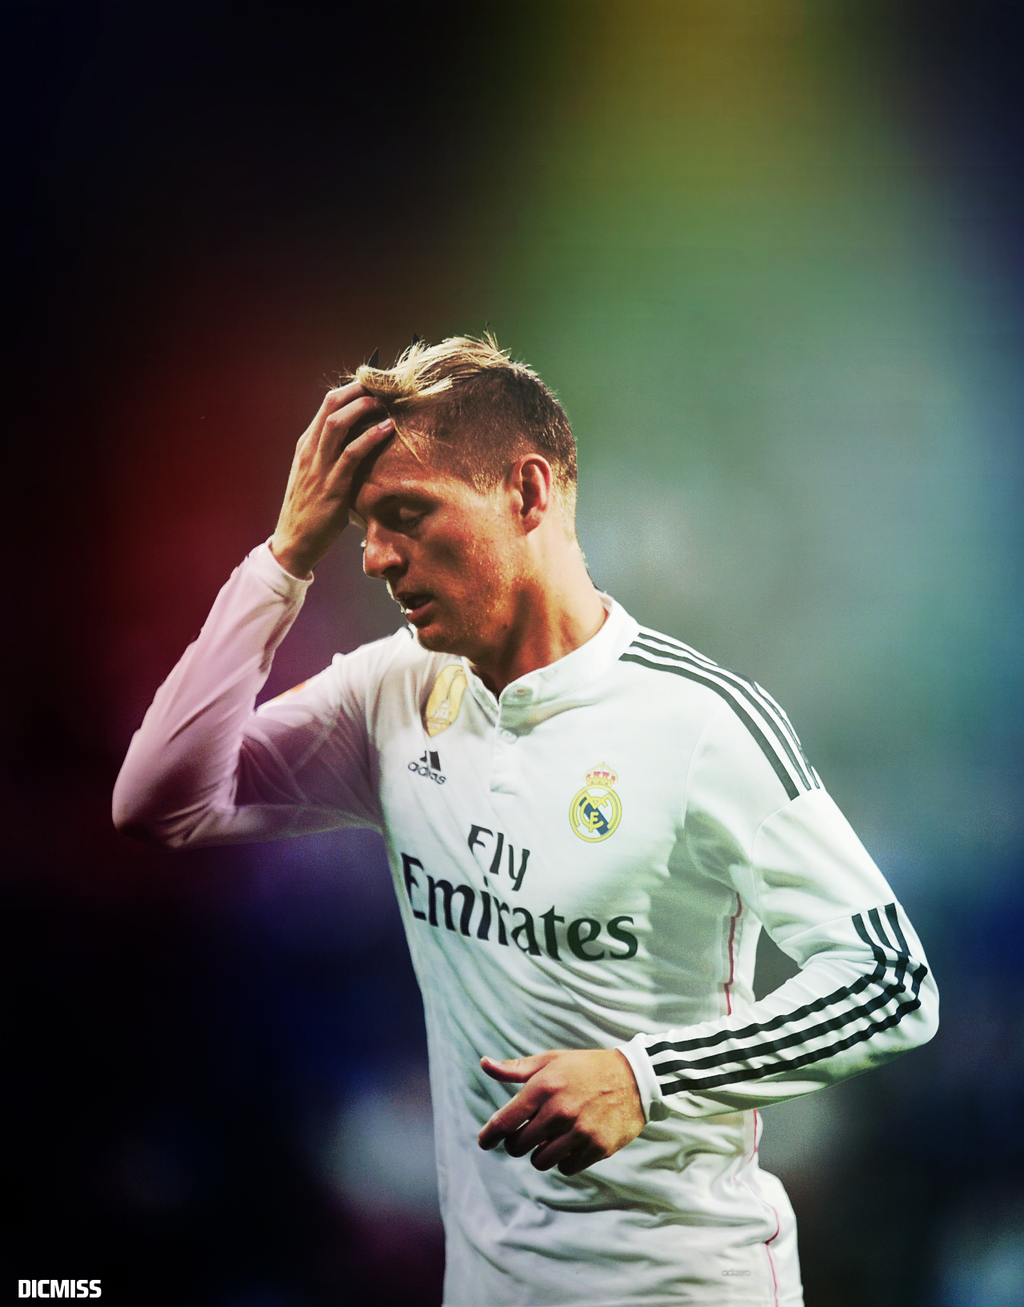 Toni Kroos by Dicmiss on DeviantArt